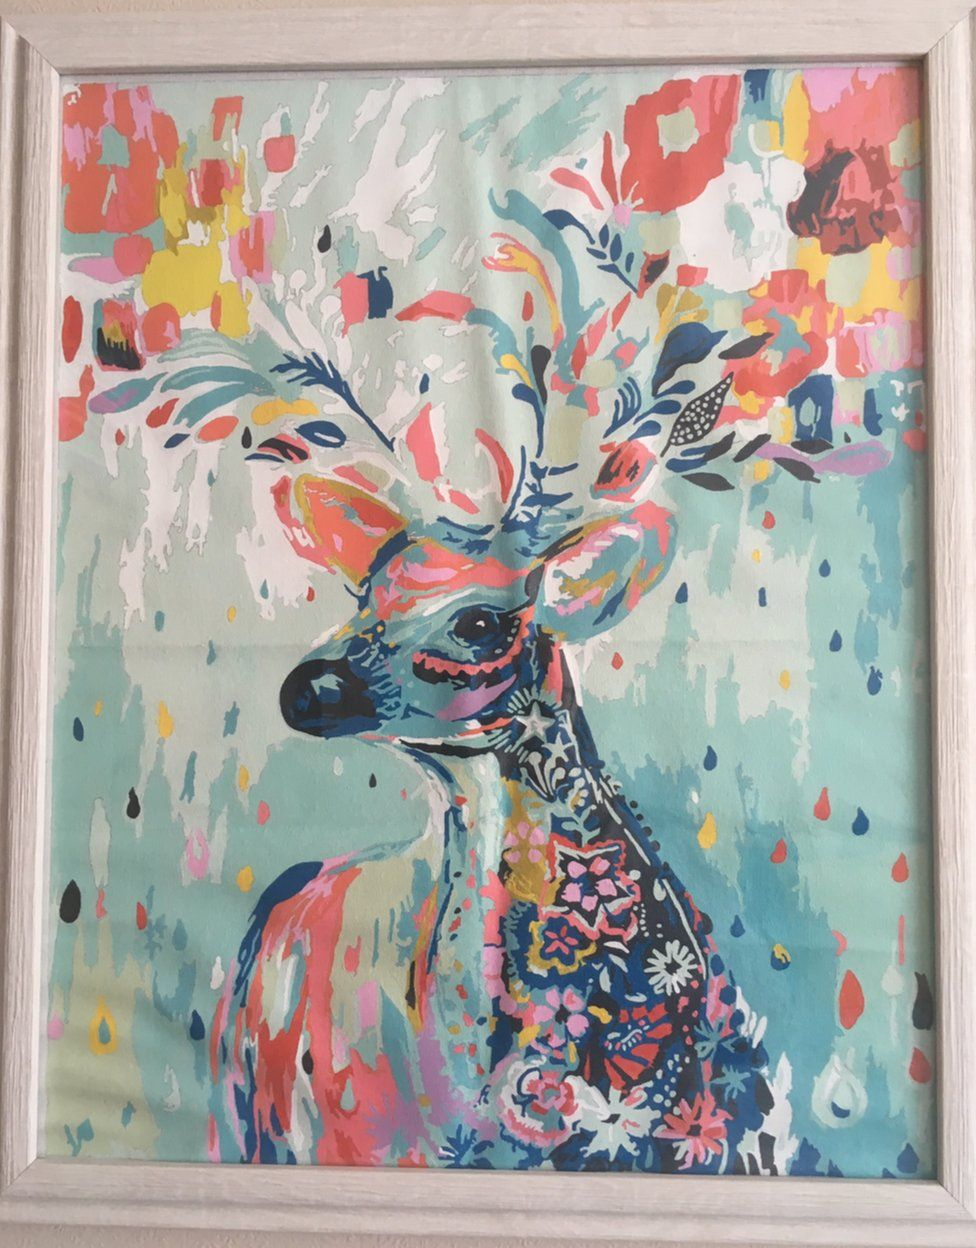 A multicoloured image of a deer created using a painting-by-numbers set